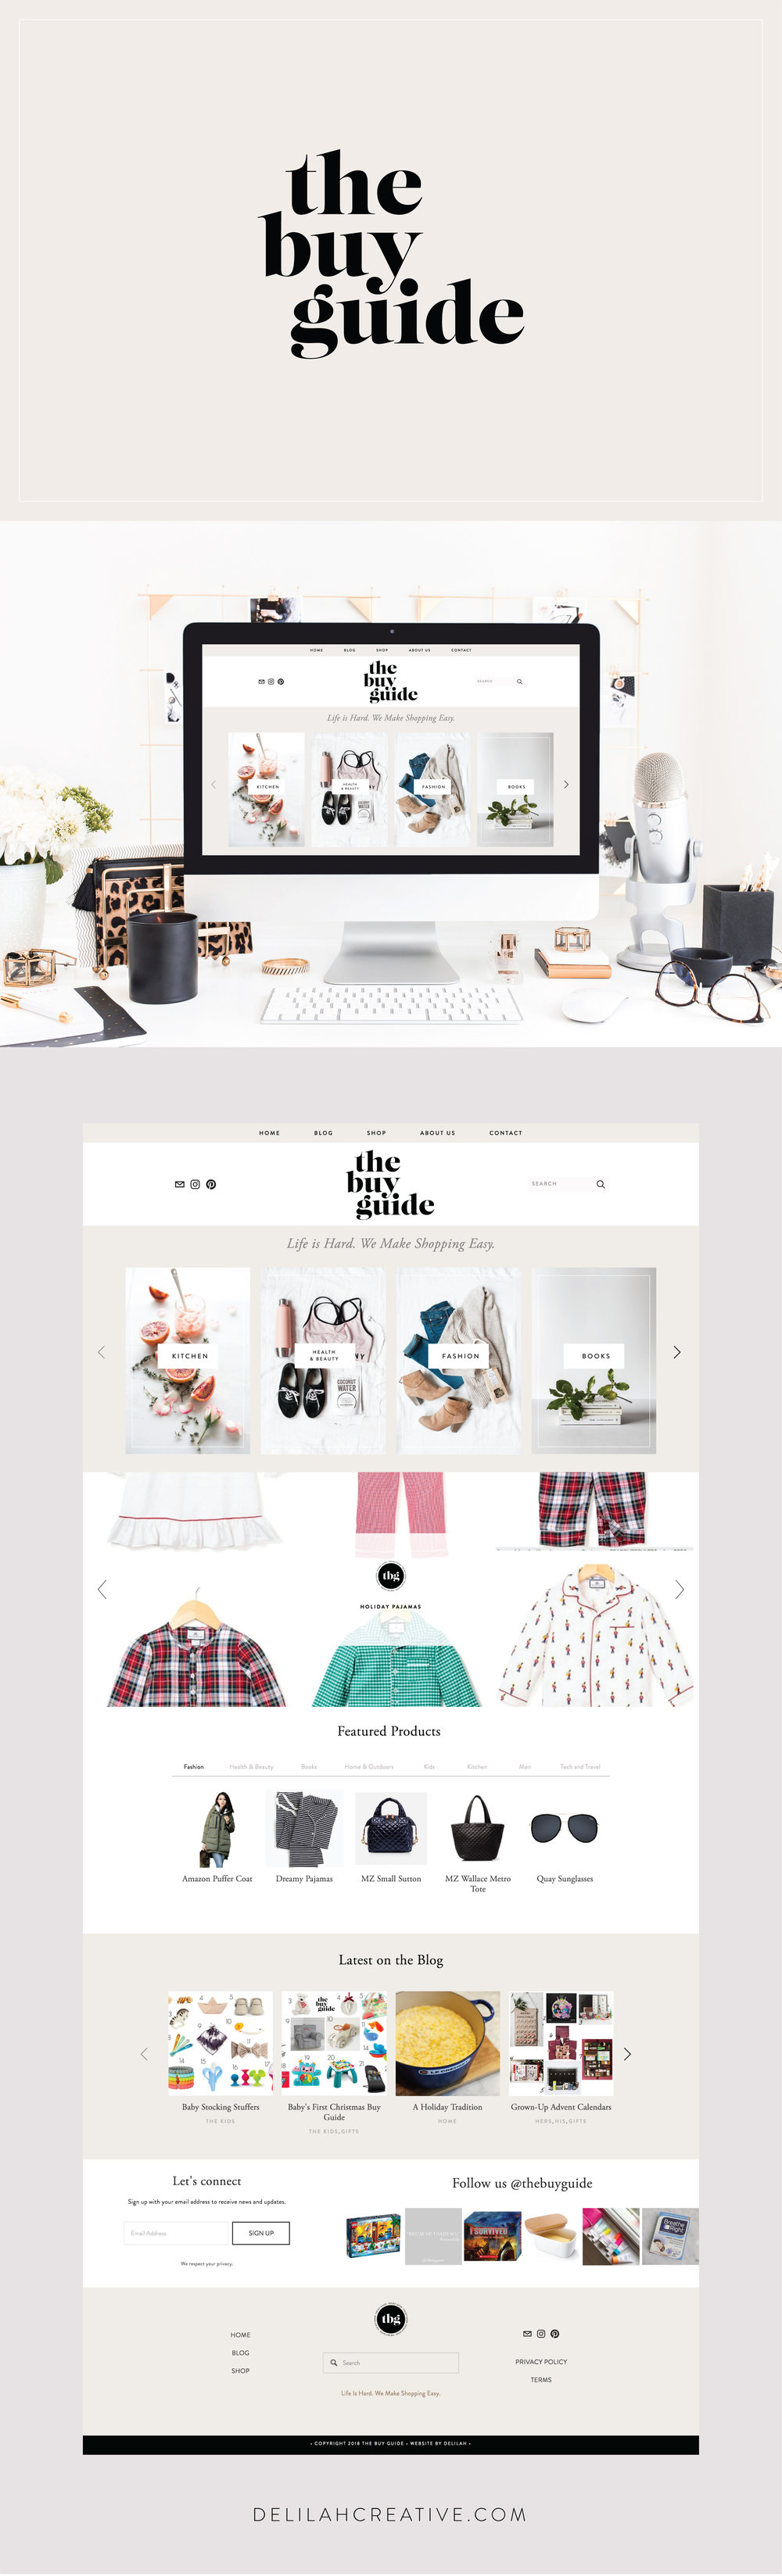 the-buy-guide-squarespace-delilah-creative